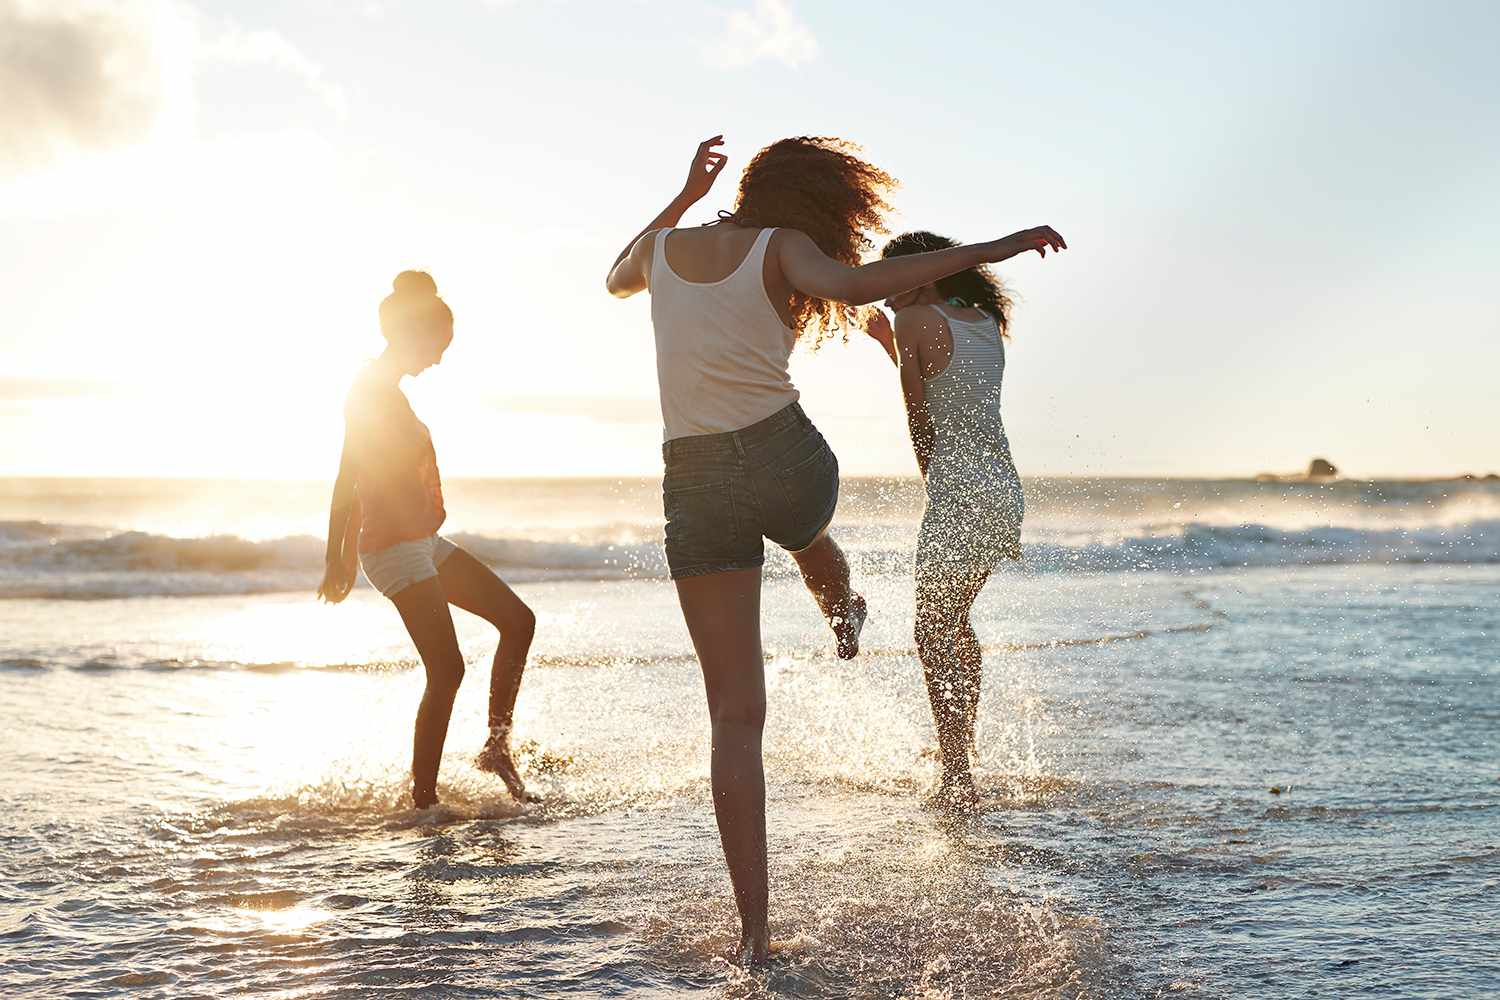 10 Fun Things to Do at the Beach